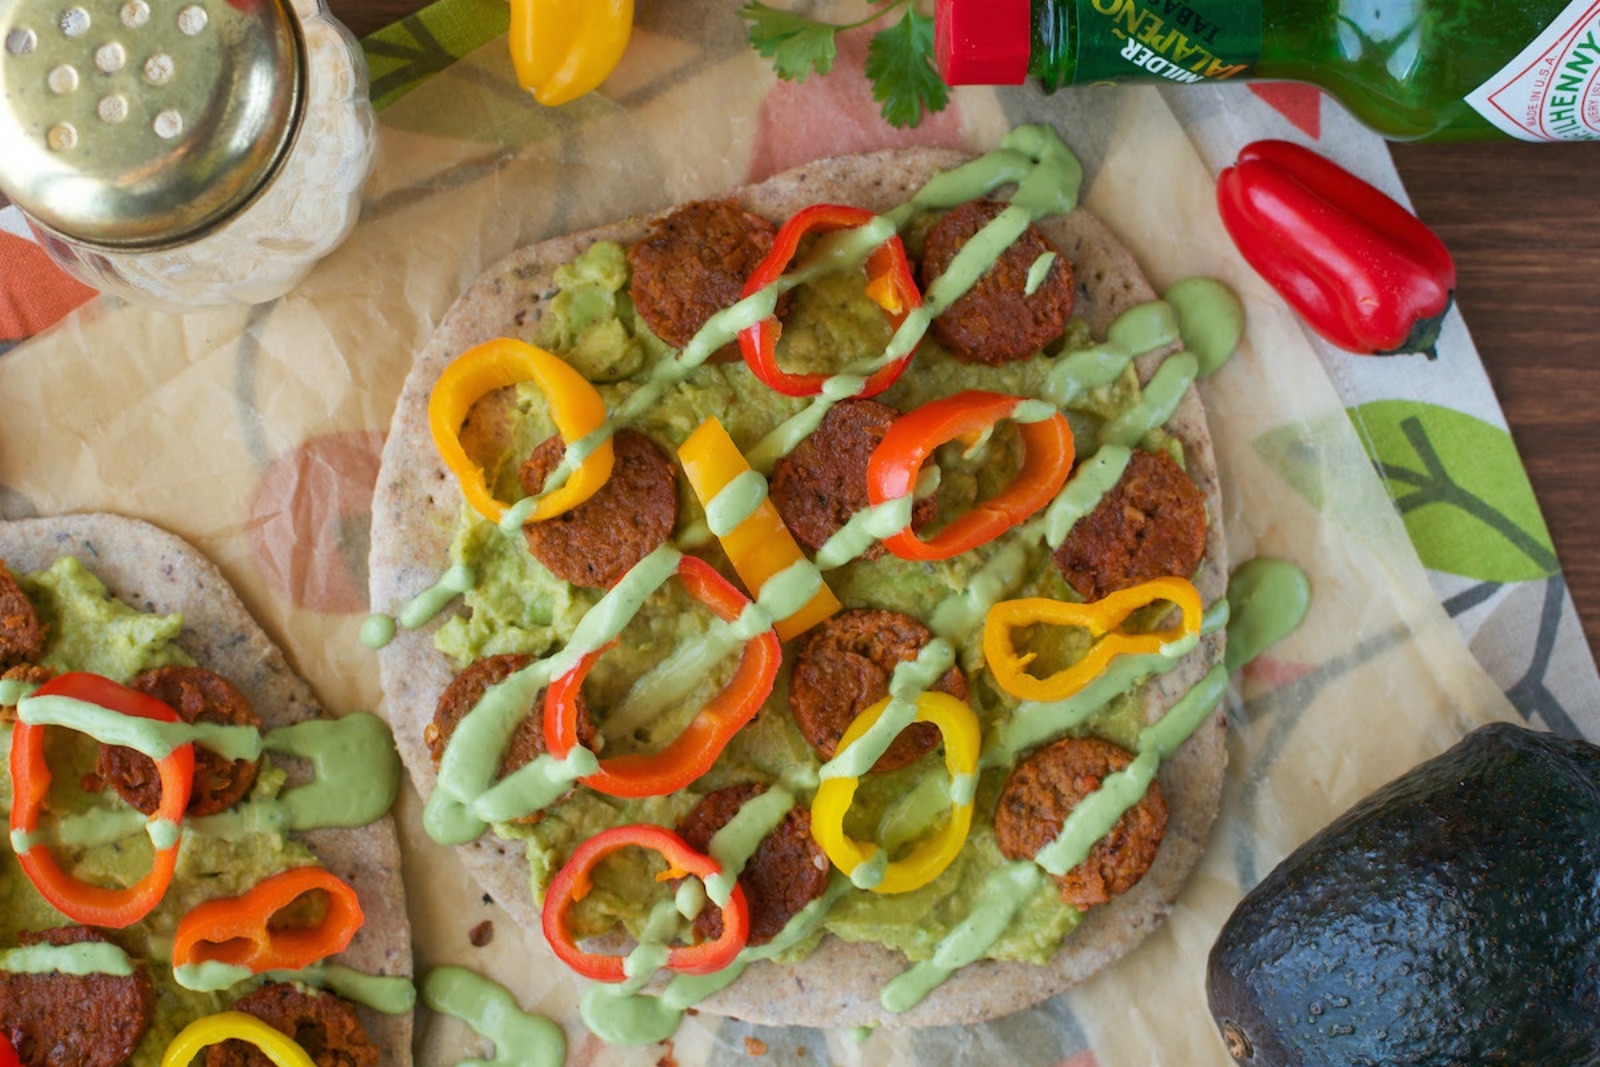 Chipotle Sausage, Peppers, & Guacamole Flatbreads with Cilantro Cream [Vegan]